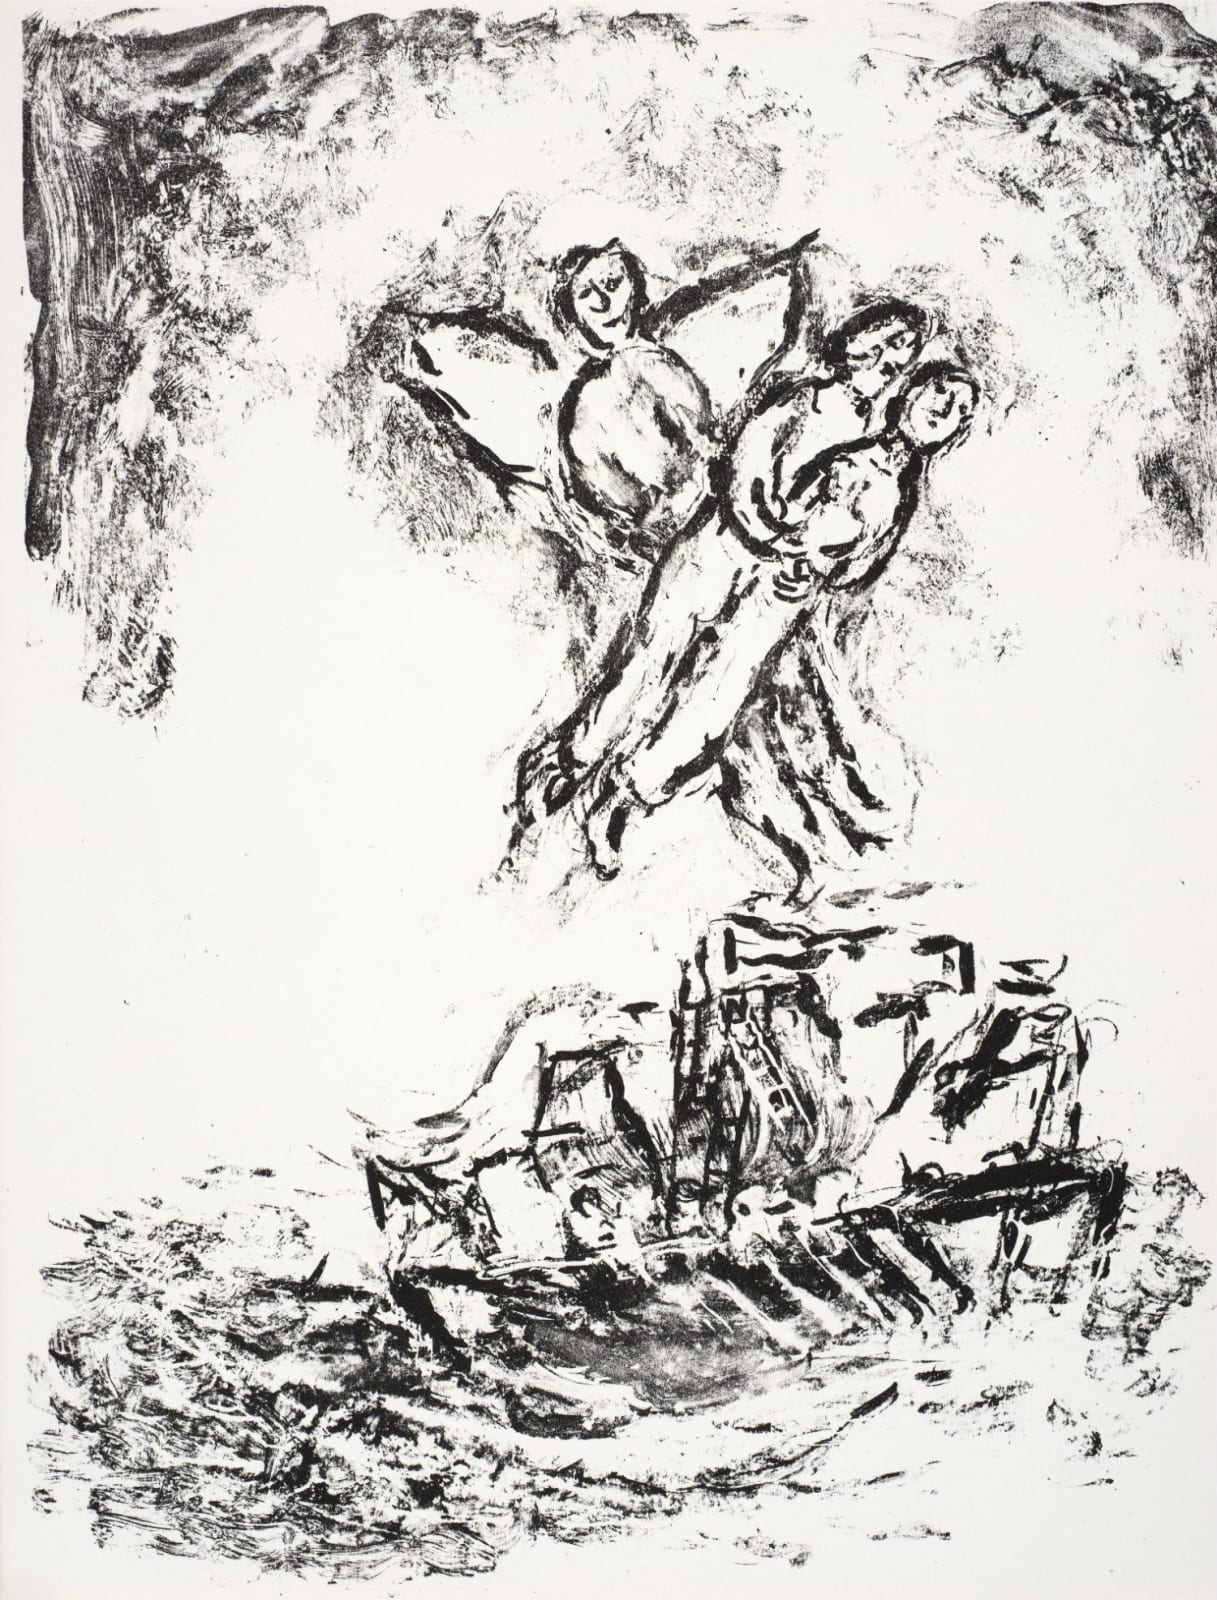 Marc Chagall (1887-1985) Ariel hovers above the Ship, carrying the embracing Lovers (Series: Shakespeare The Tempest) 1975 Lithograph 42.5 x 32.5 cm Ben Uri Collection © Marc Chagall estate To see and discover more about this artist click here